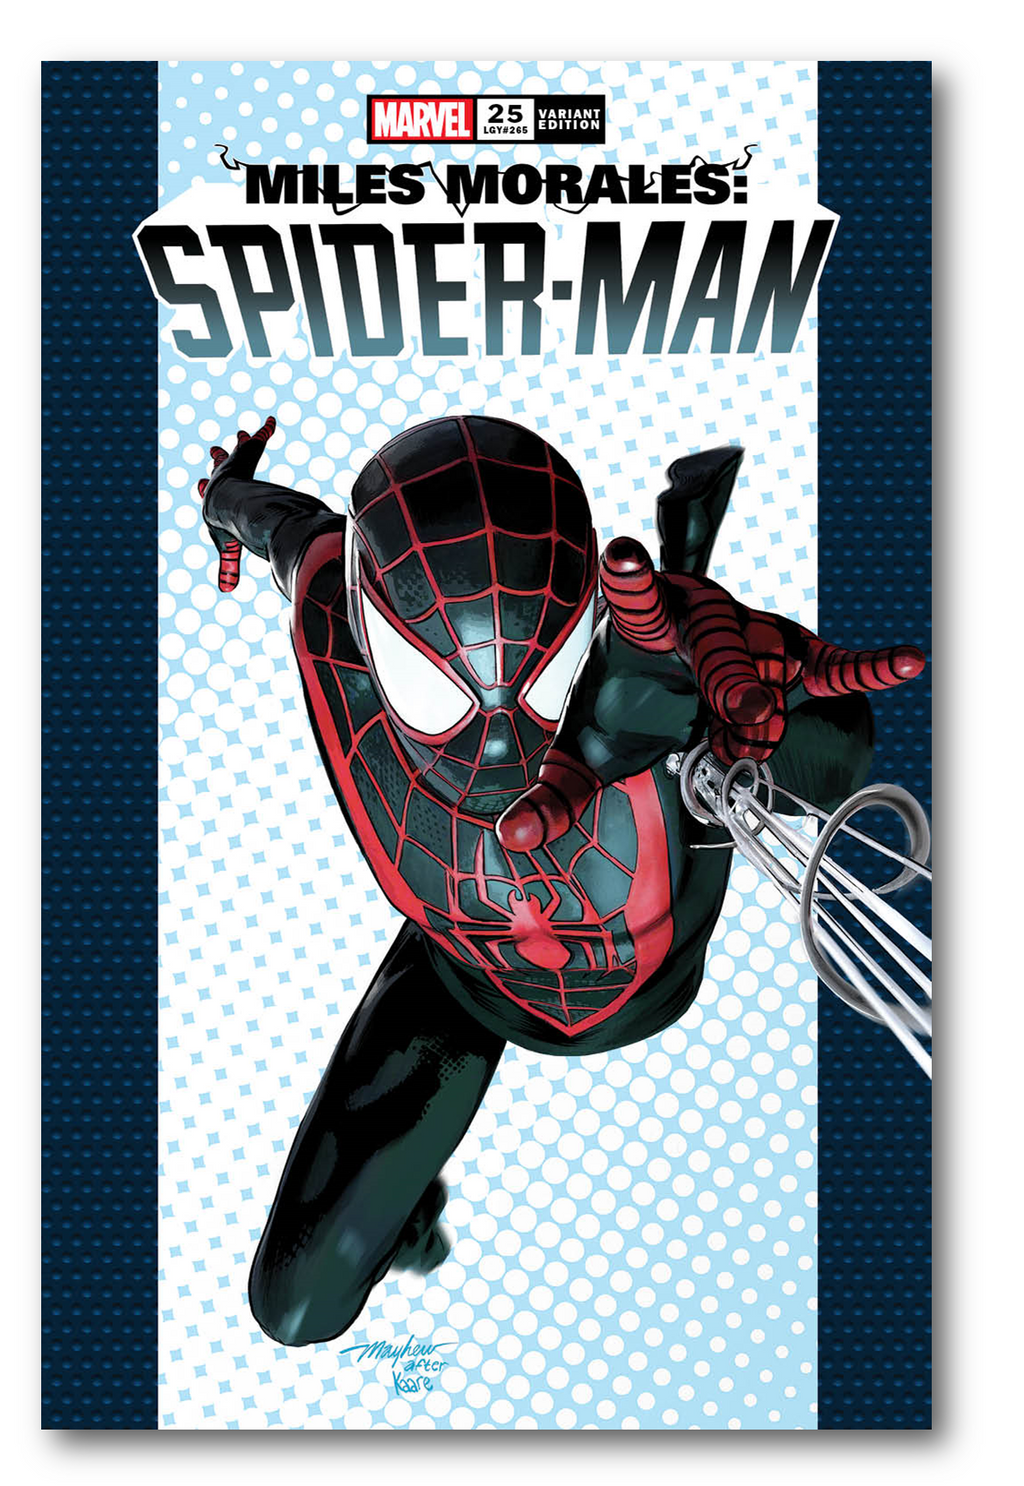 MILES MORALES SPIDER-MAN #25 MIKE MAYHEW VARIANT OPTIONS